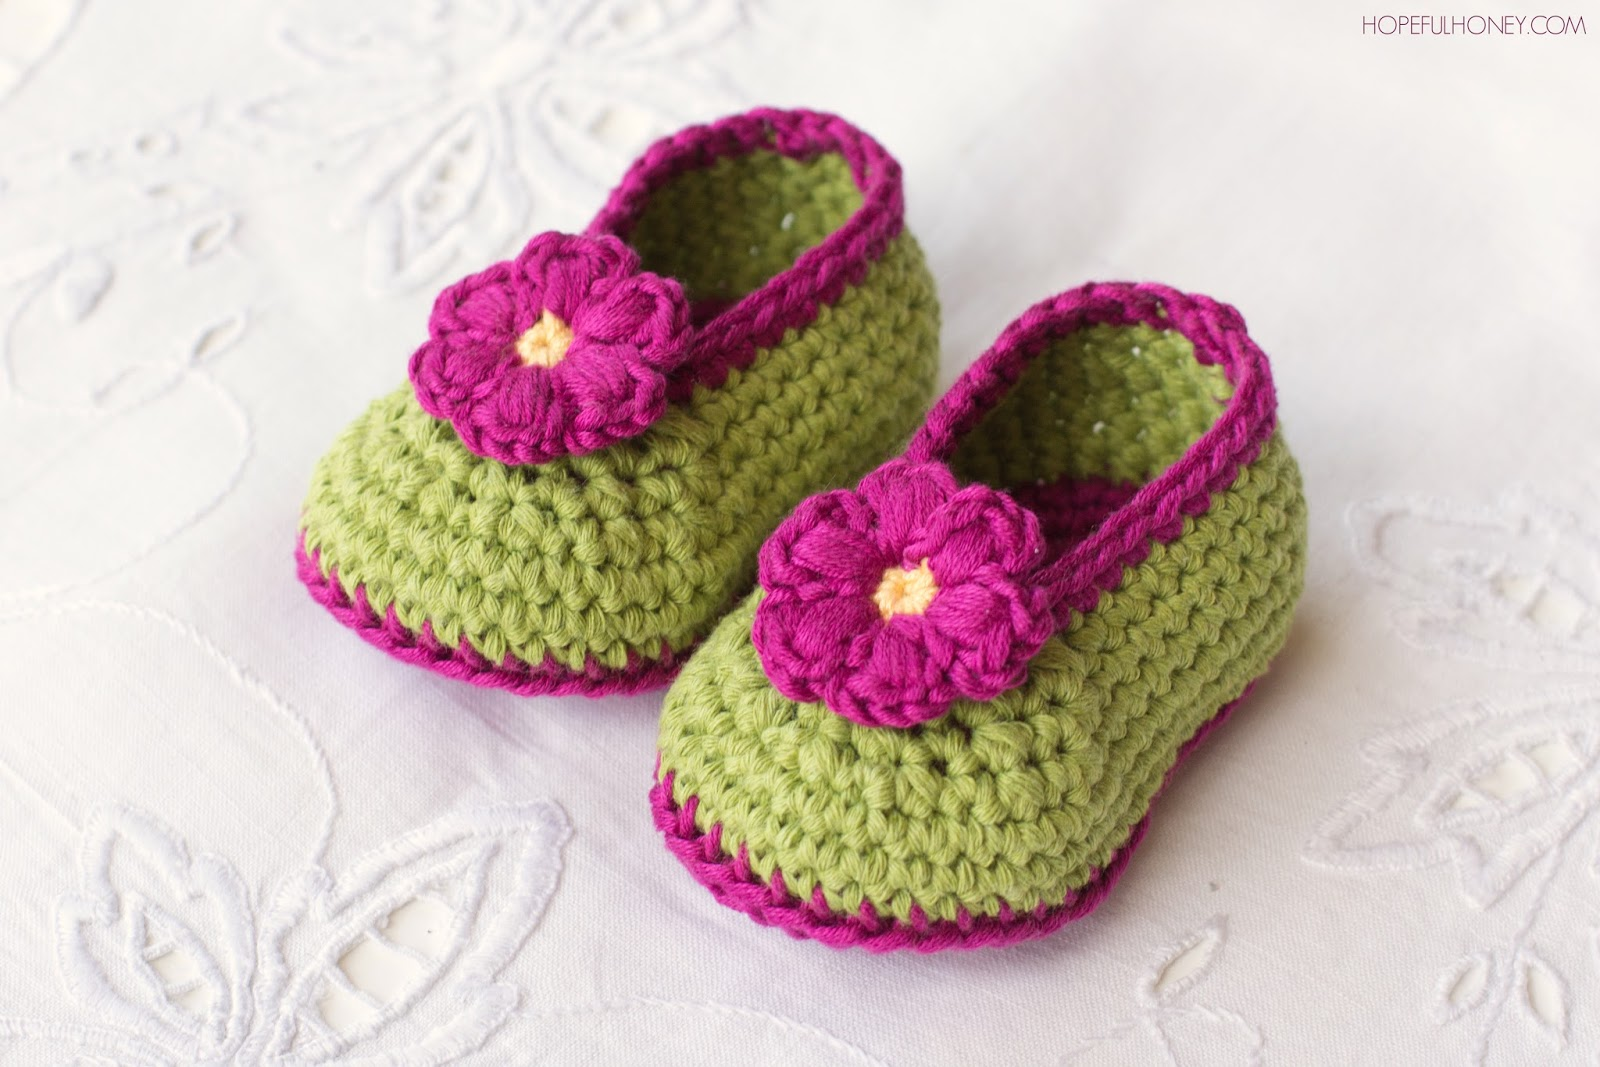 Crochet Baby Bonnet And Booties Pattern : Hopeful Honey Craft, Crochet, Create: Fairy Blossom Baby ...